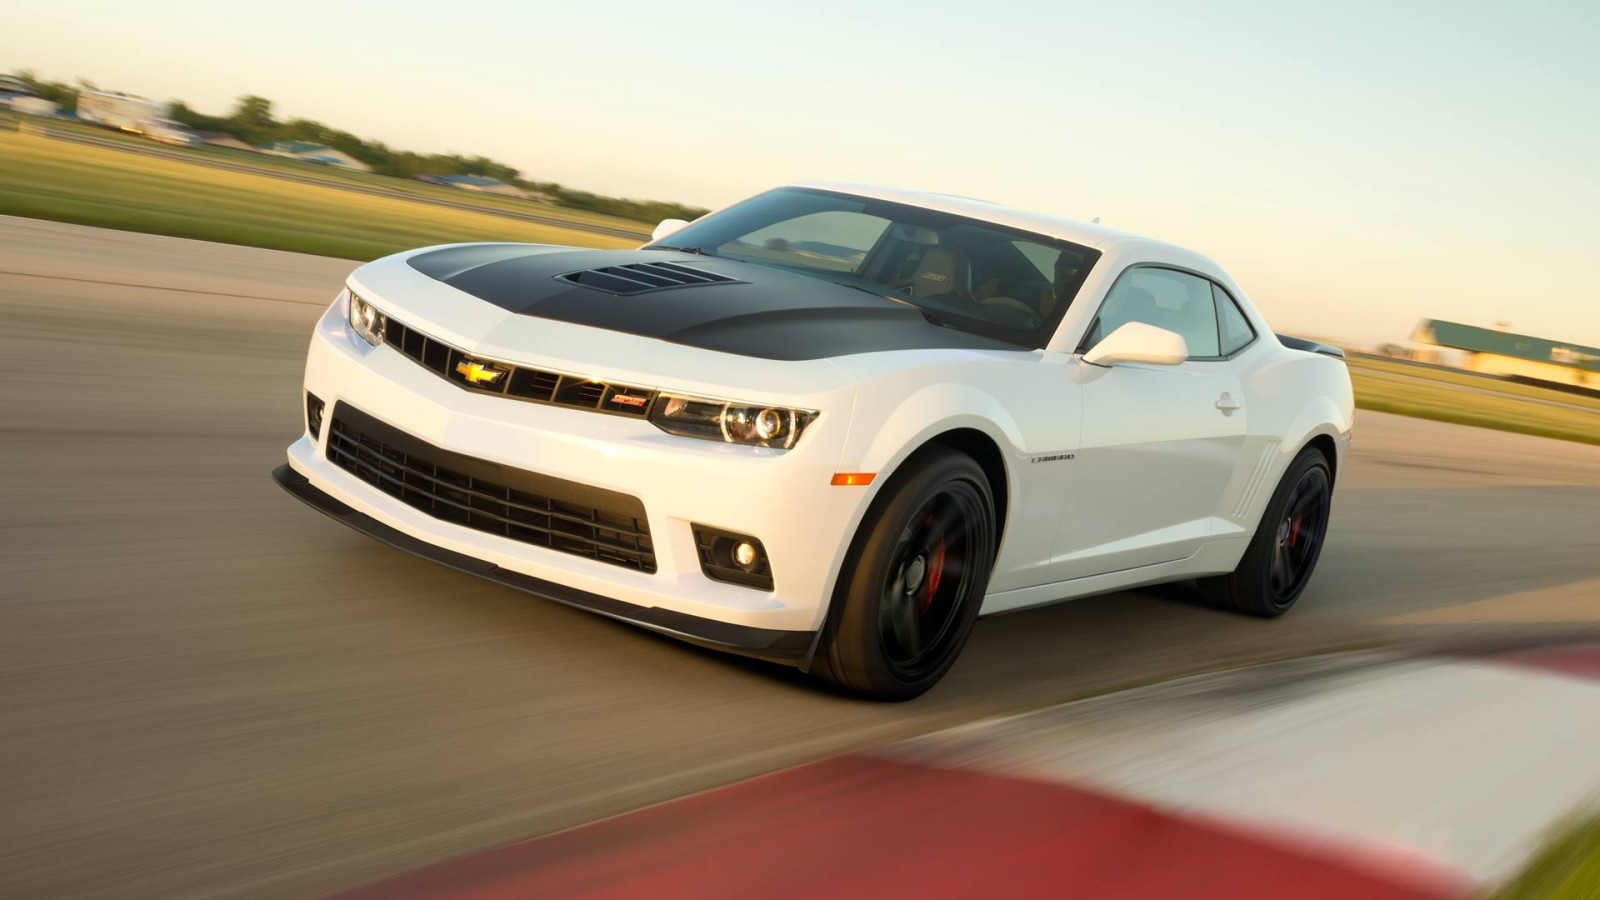 Discover the 2014 Chevy Camaro SS at Cox Chevrolet